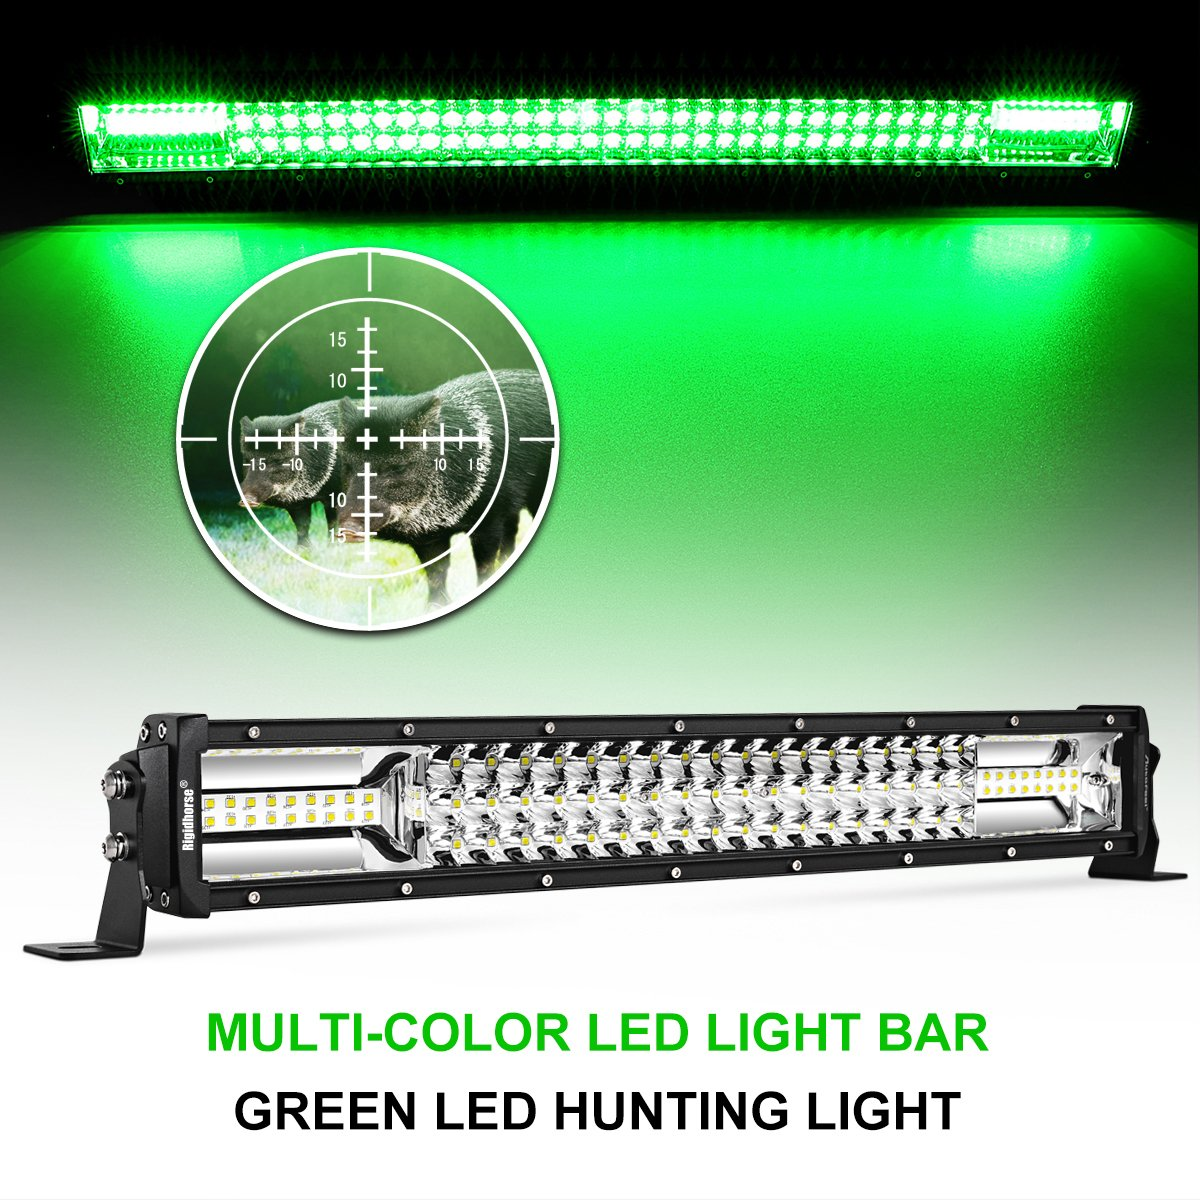 Led Light Bar Rigidhorse 22 180w Dual Color Tri Circuit New Driver Combo Whitegreen Lights Beam Driving For Off Road Suv Atv Jeep Truck